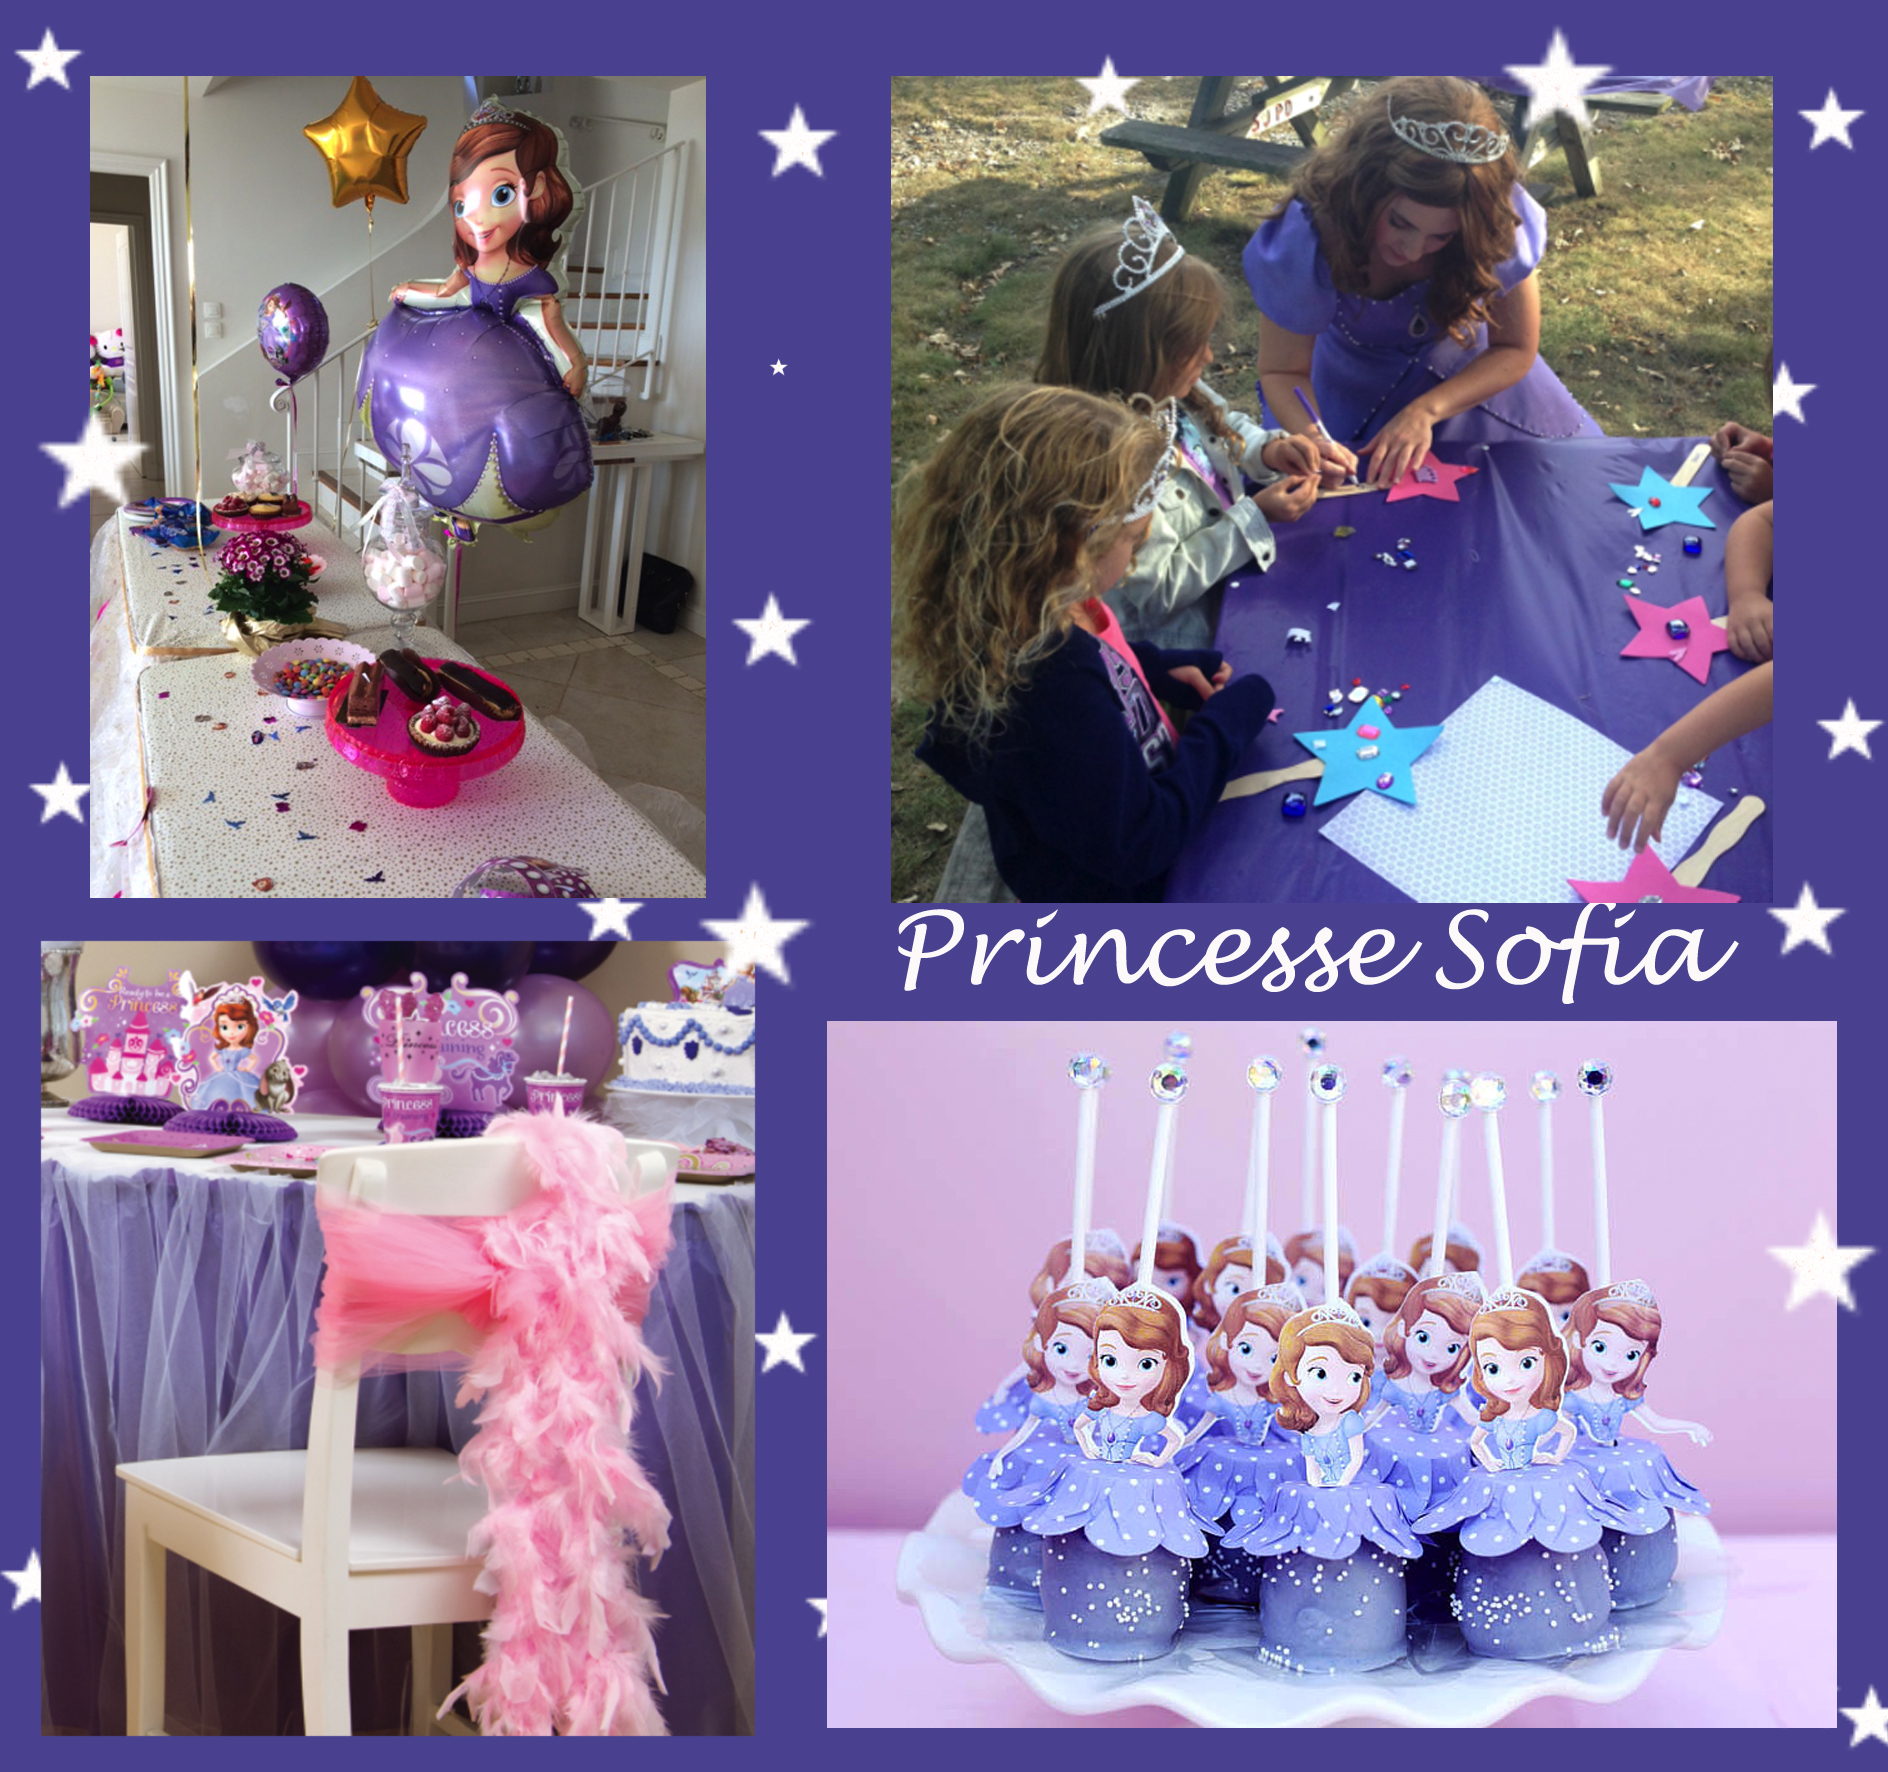 princess sofia birthday party. Black Bedroom Furniture Sets. Home Design Ideas